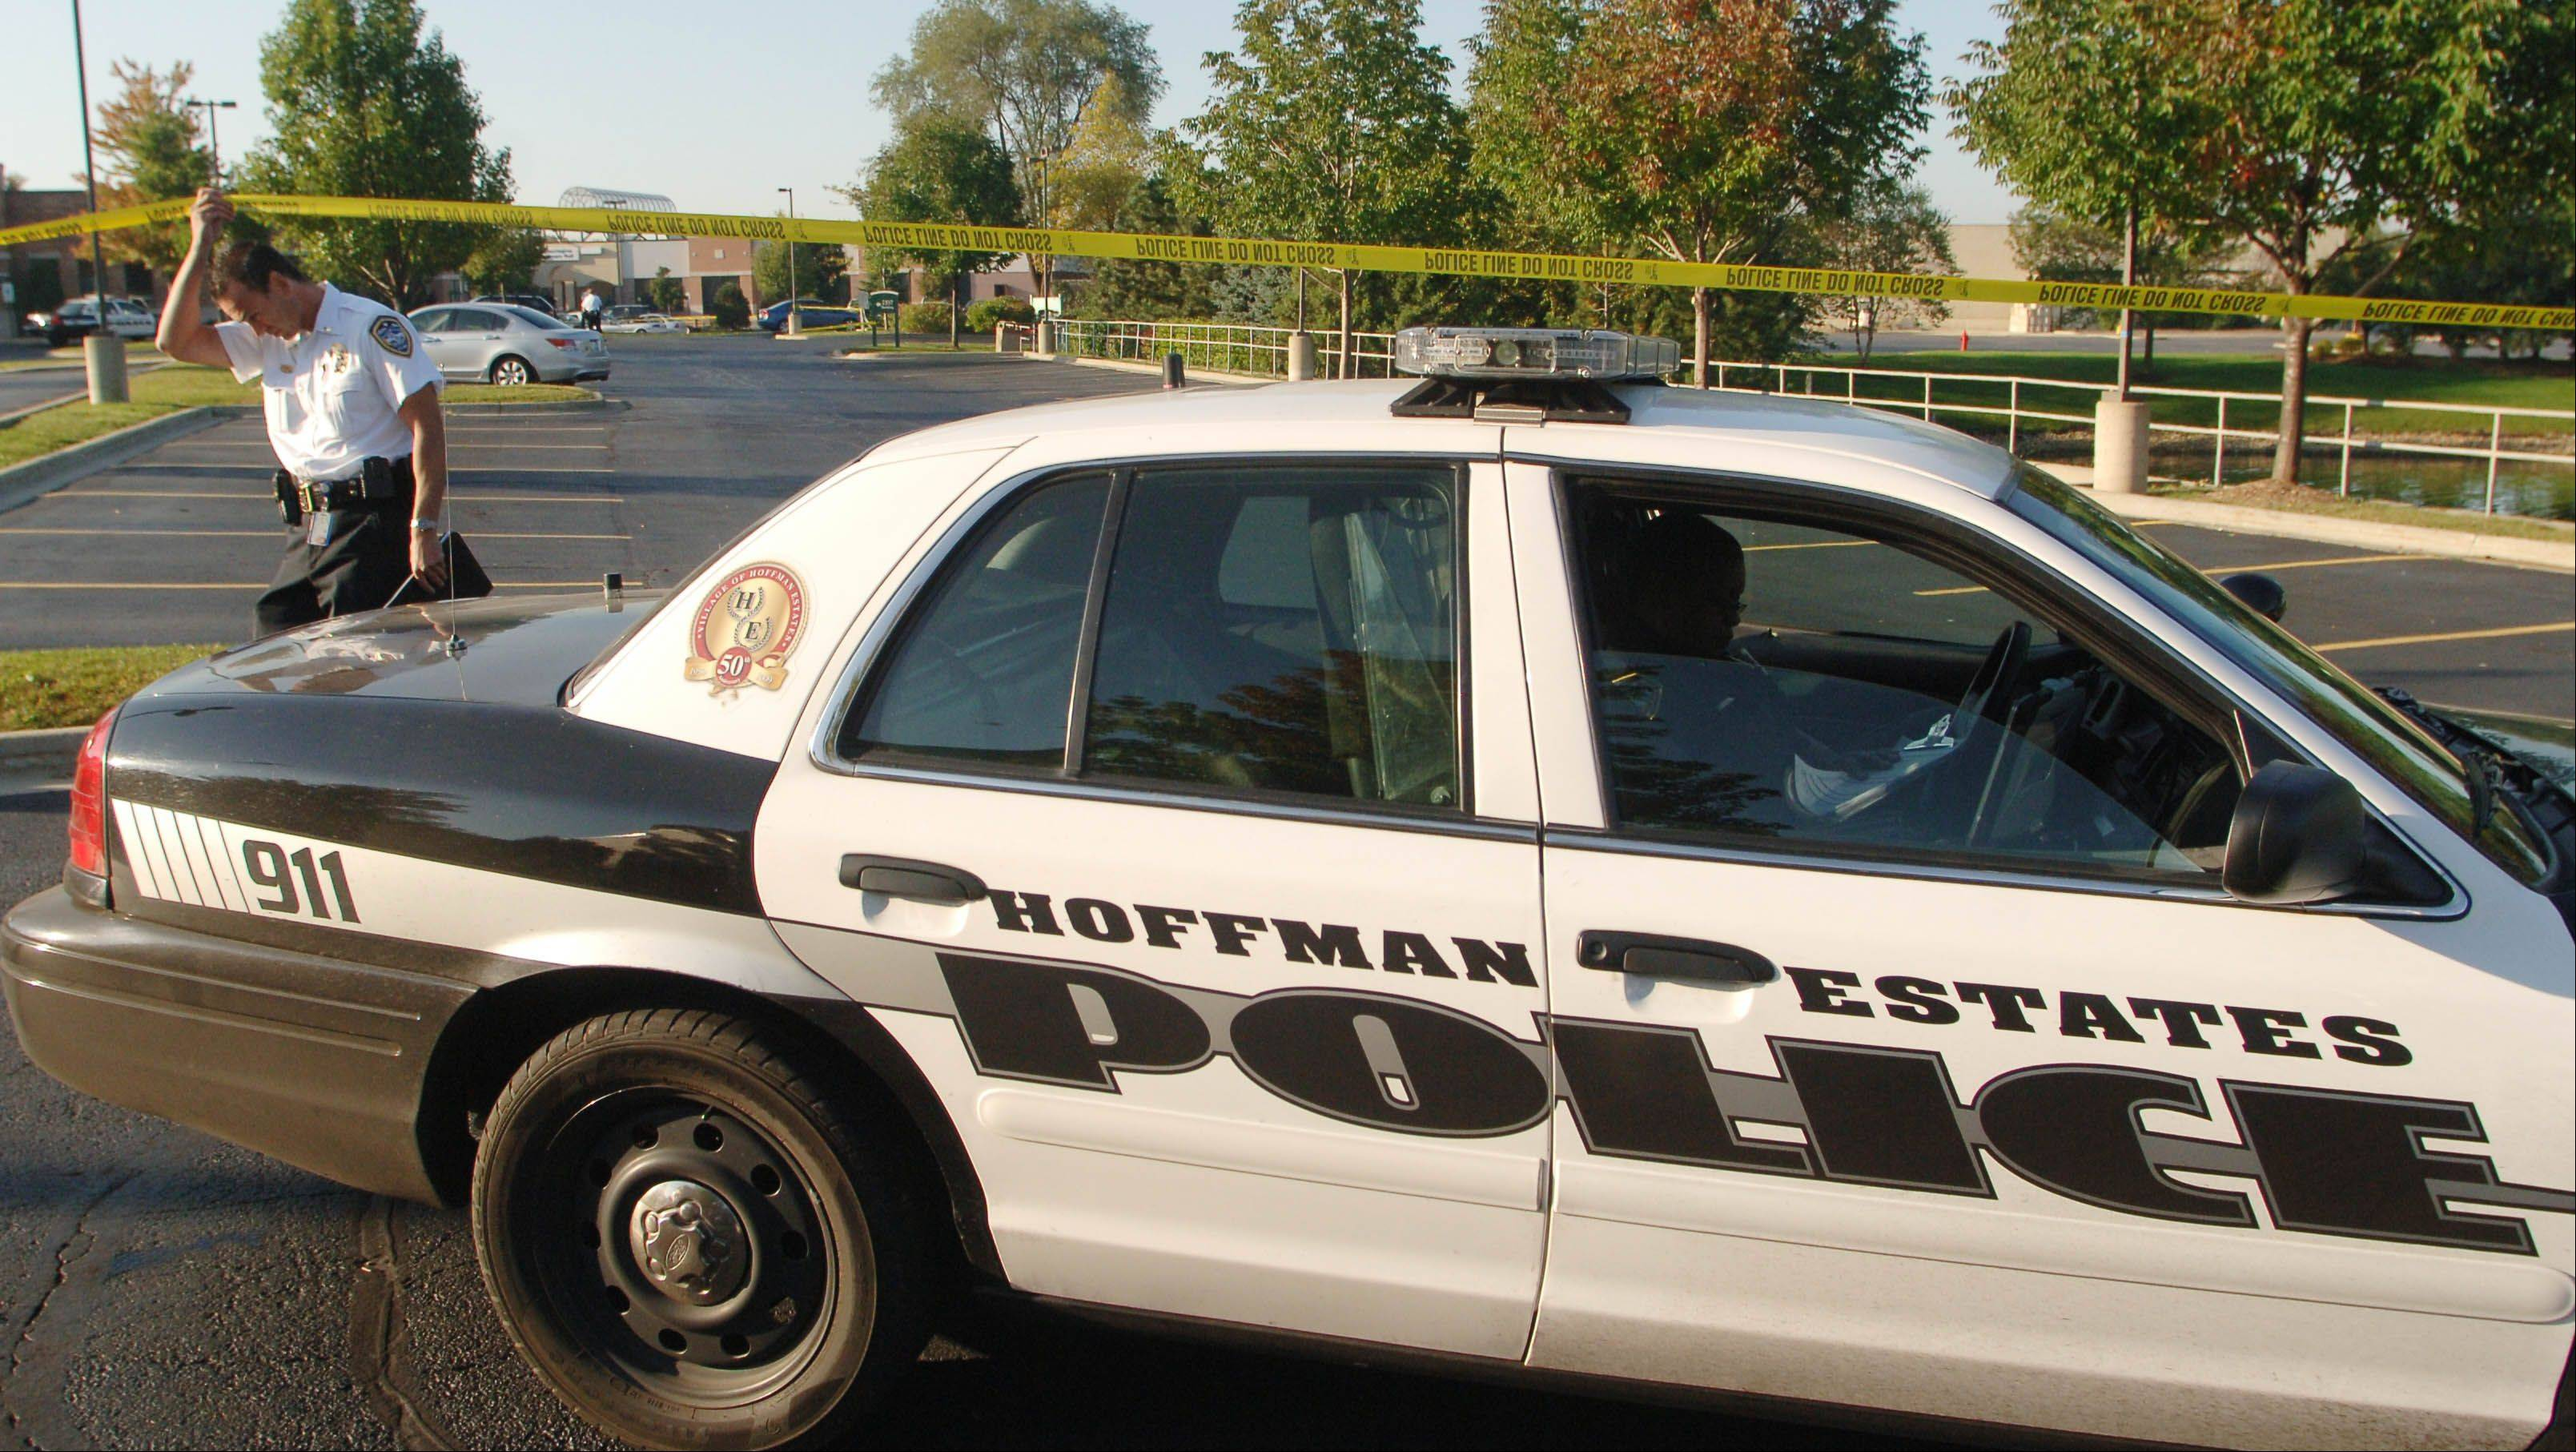 Hoffman Estates police officers average a salary of more than $89,000 a year, the highest among 77 suburban communities surveyed.